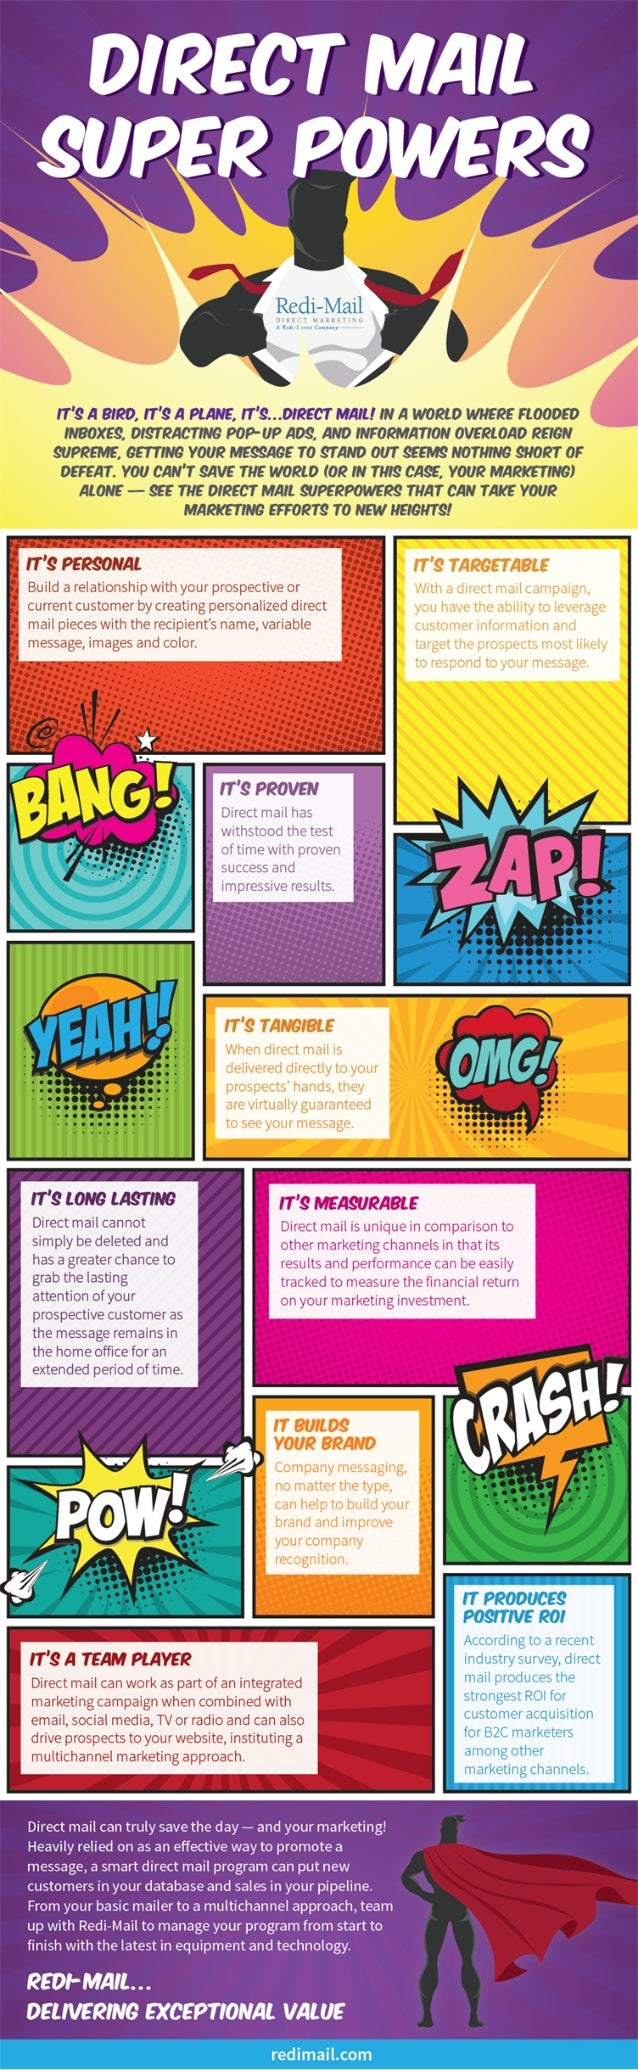 Direct Mail Super Powers